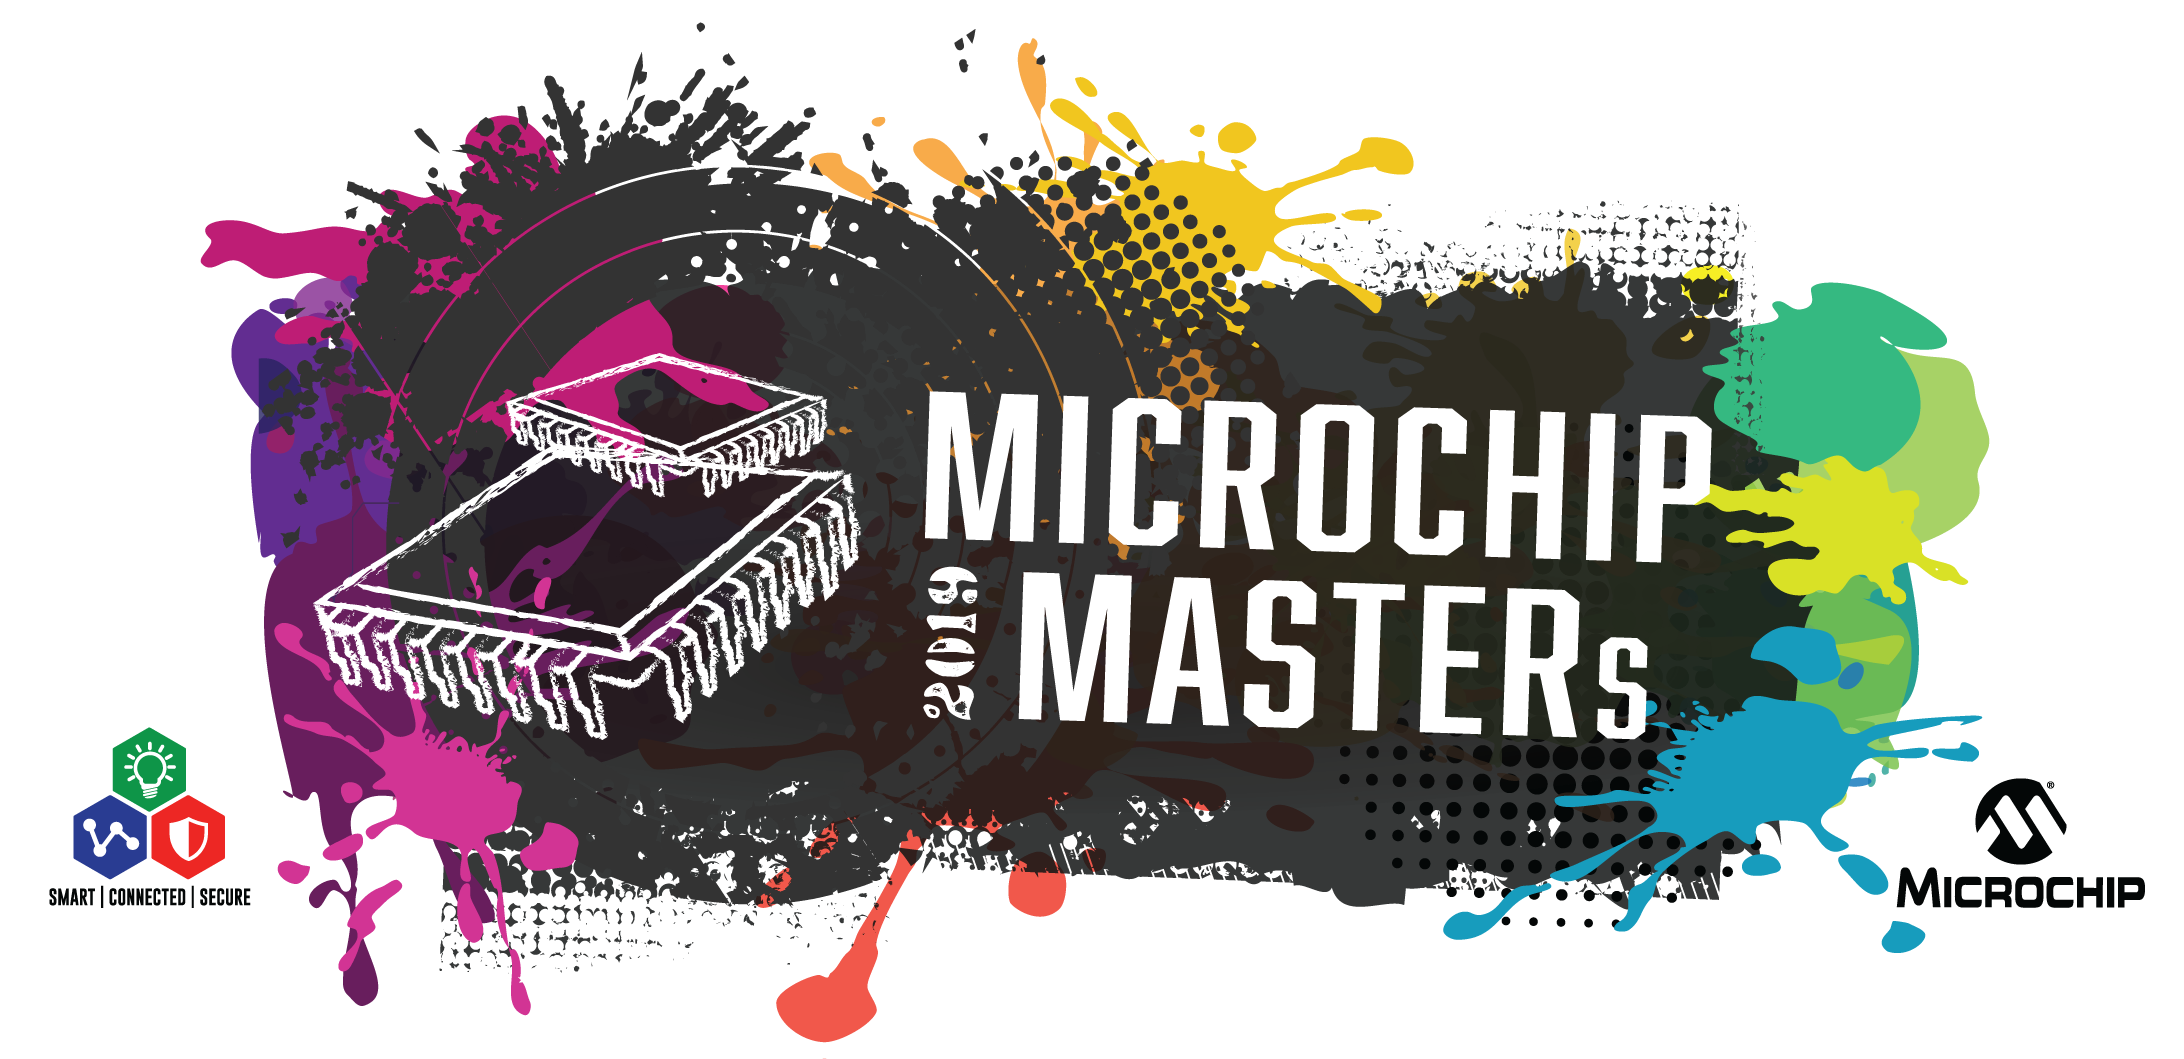 wolfSSL at Microchip Masters 2019